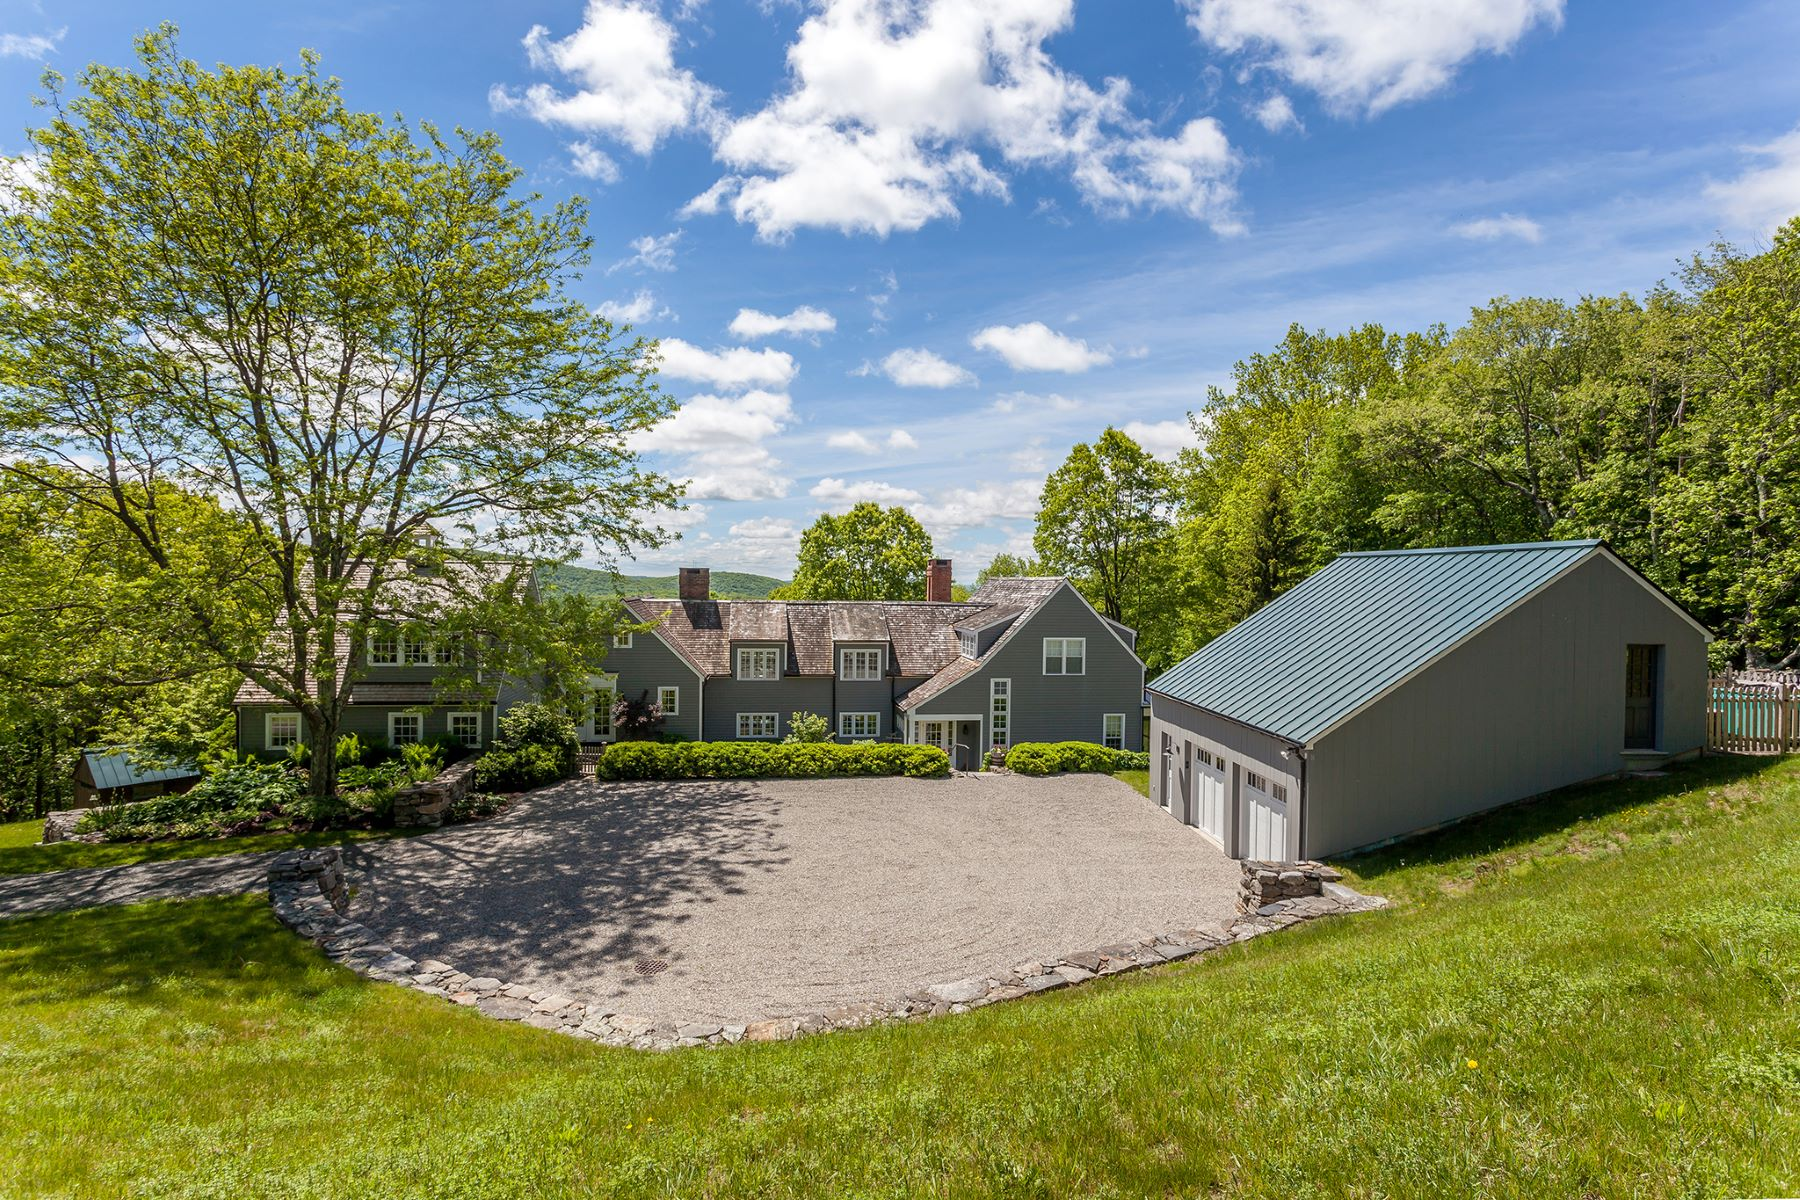 Single Family Home for Sale at Contemporary Elegance 152 Ore Hill Rd Kent, Connecticut, 06785 United States